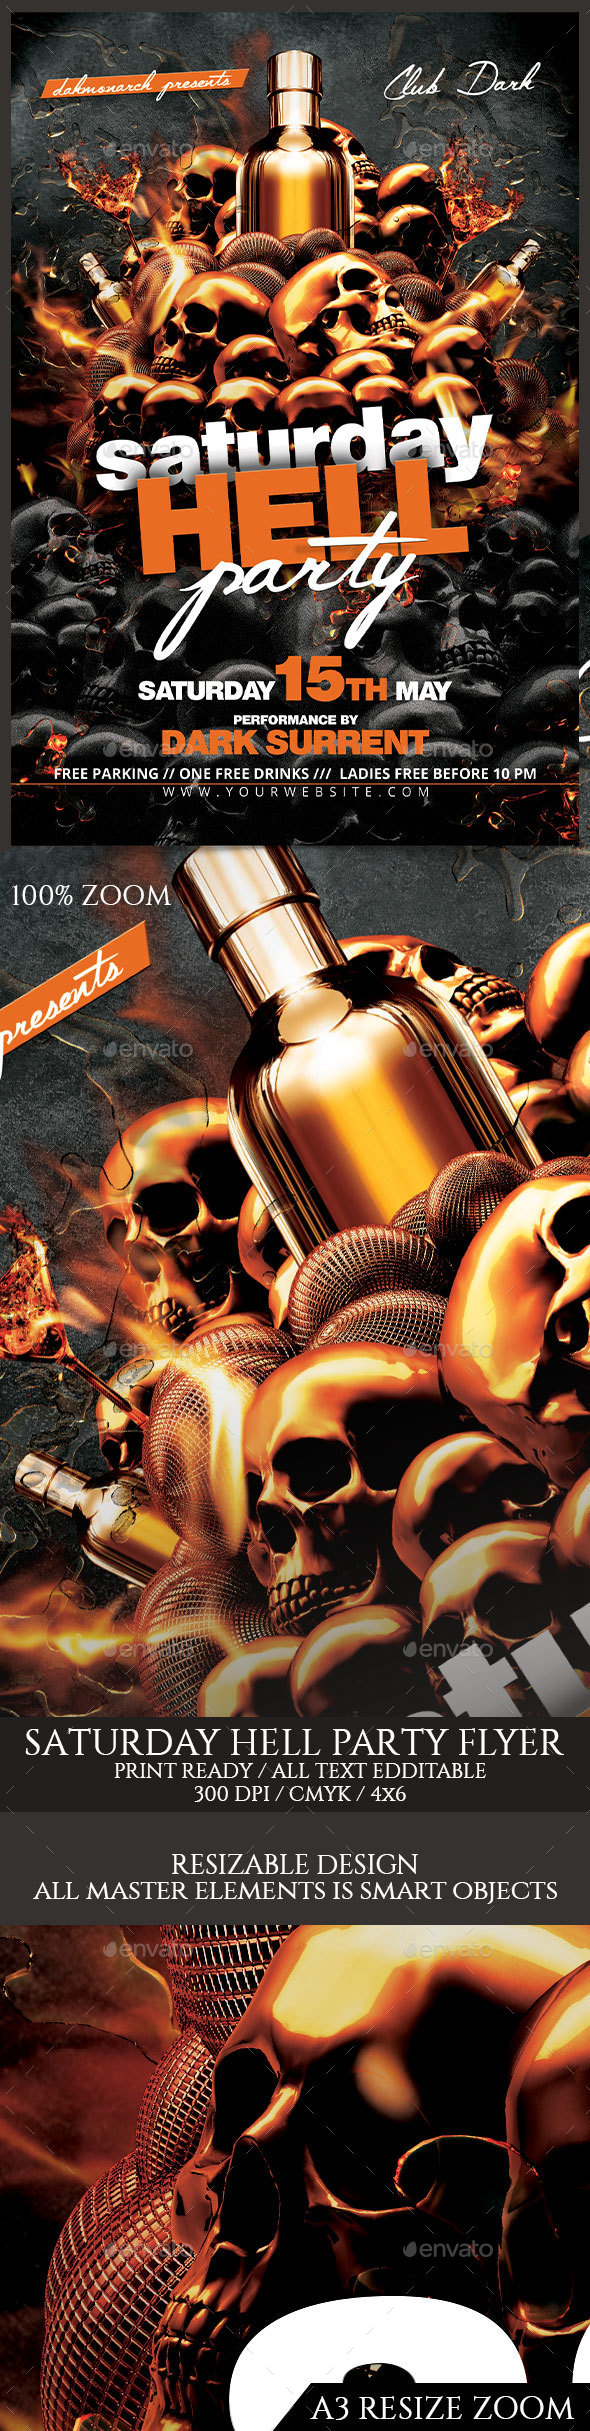 Saturday Hell Party Flyer - Events Flyers